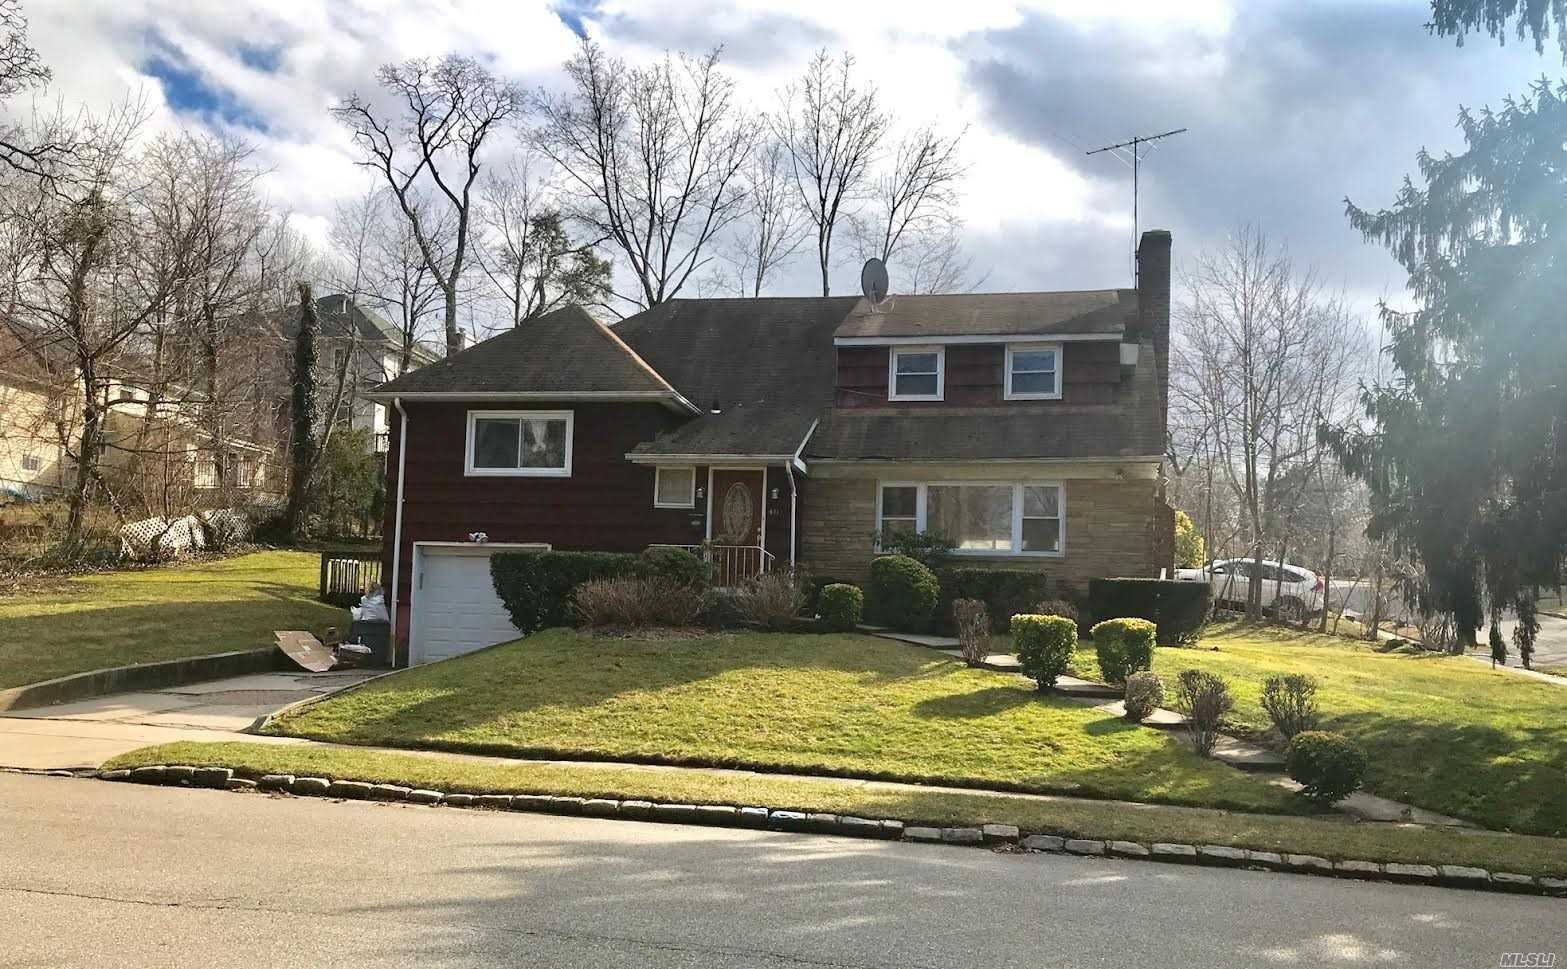 48 Wooleys Lane, Great Neck, NY 11023 - MLS#: 3198729